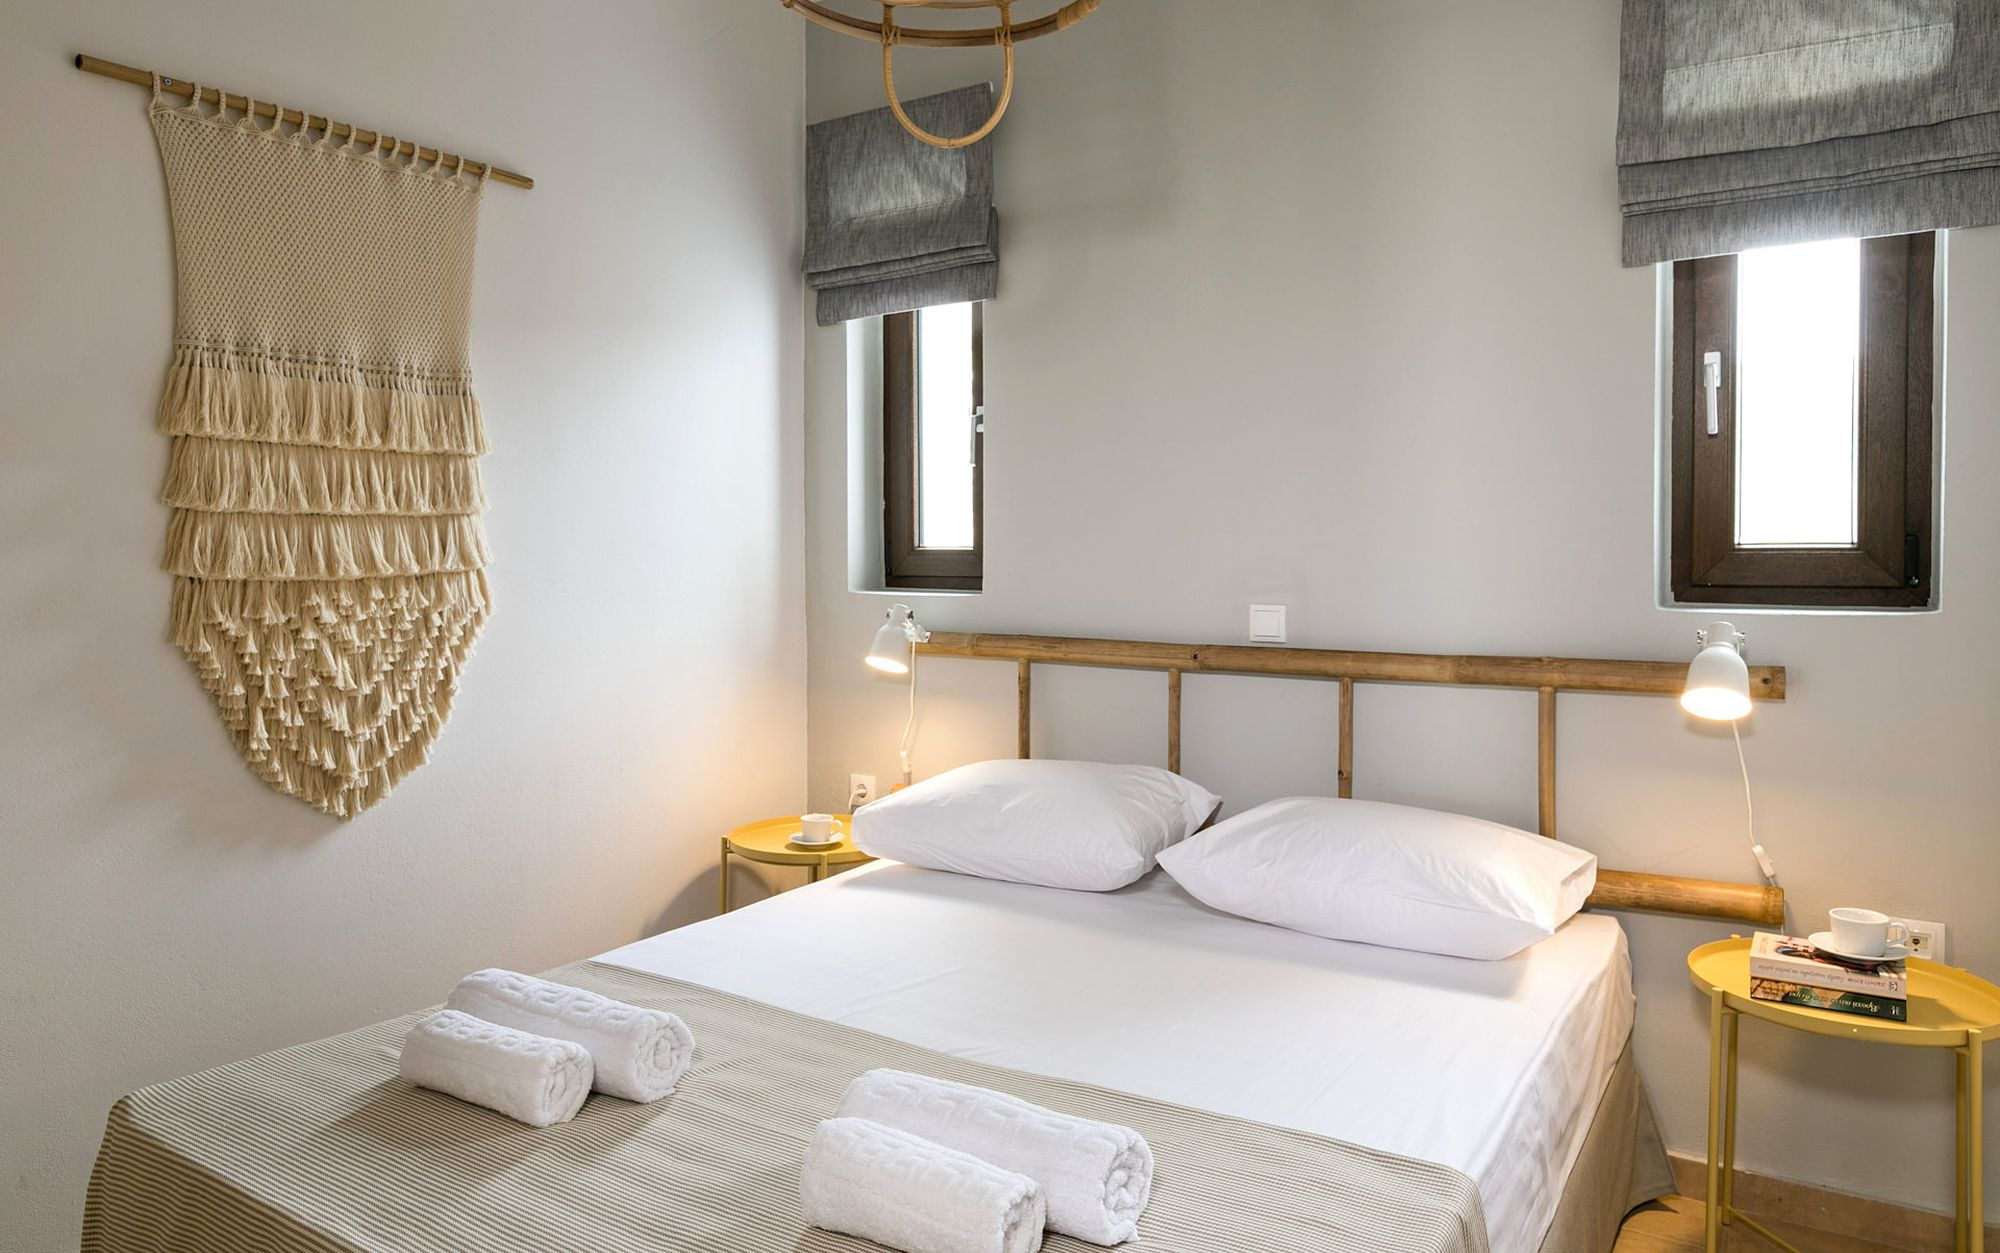 Syra Suite bedroom with a double bed, metallic yellow bedside tables, modern white wall lights, two windows on the wall over the bed and boho decoration with a wooden ladder over the bed and a big macramé.